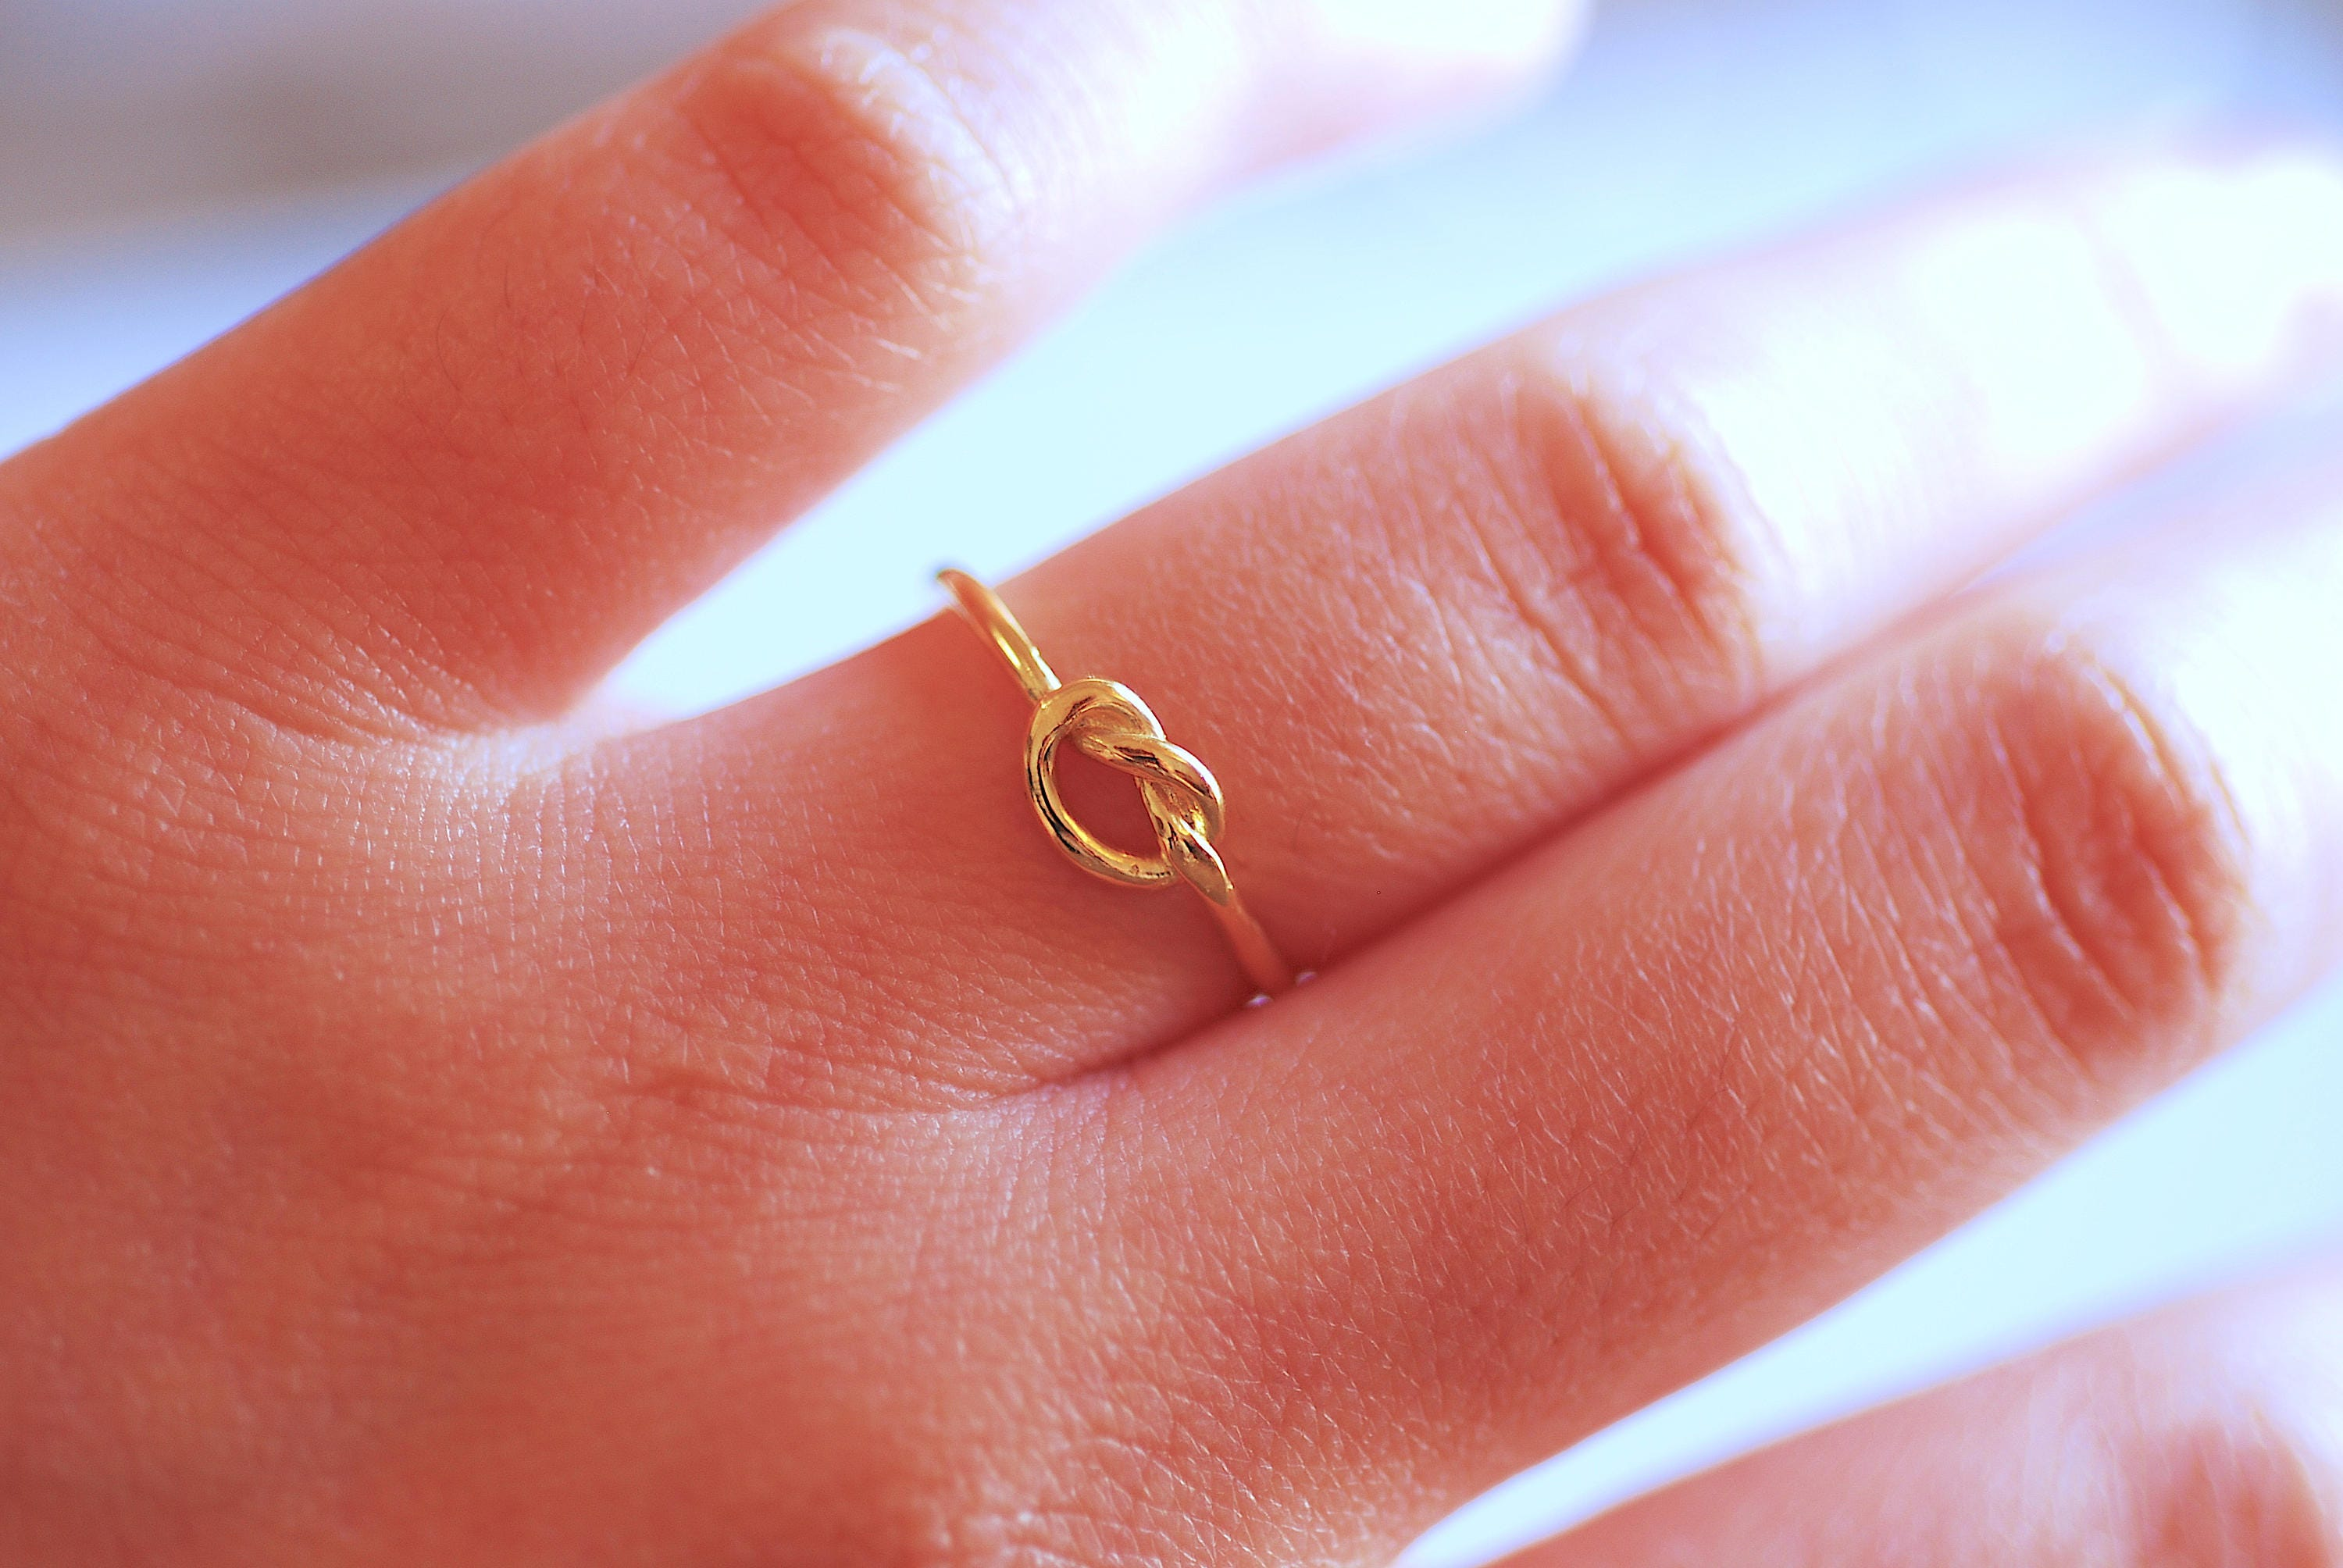 Shiny Gold Love Knot Ring Gold Love Knot adjustable ring